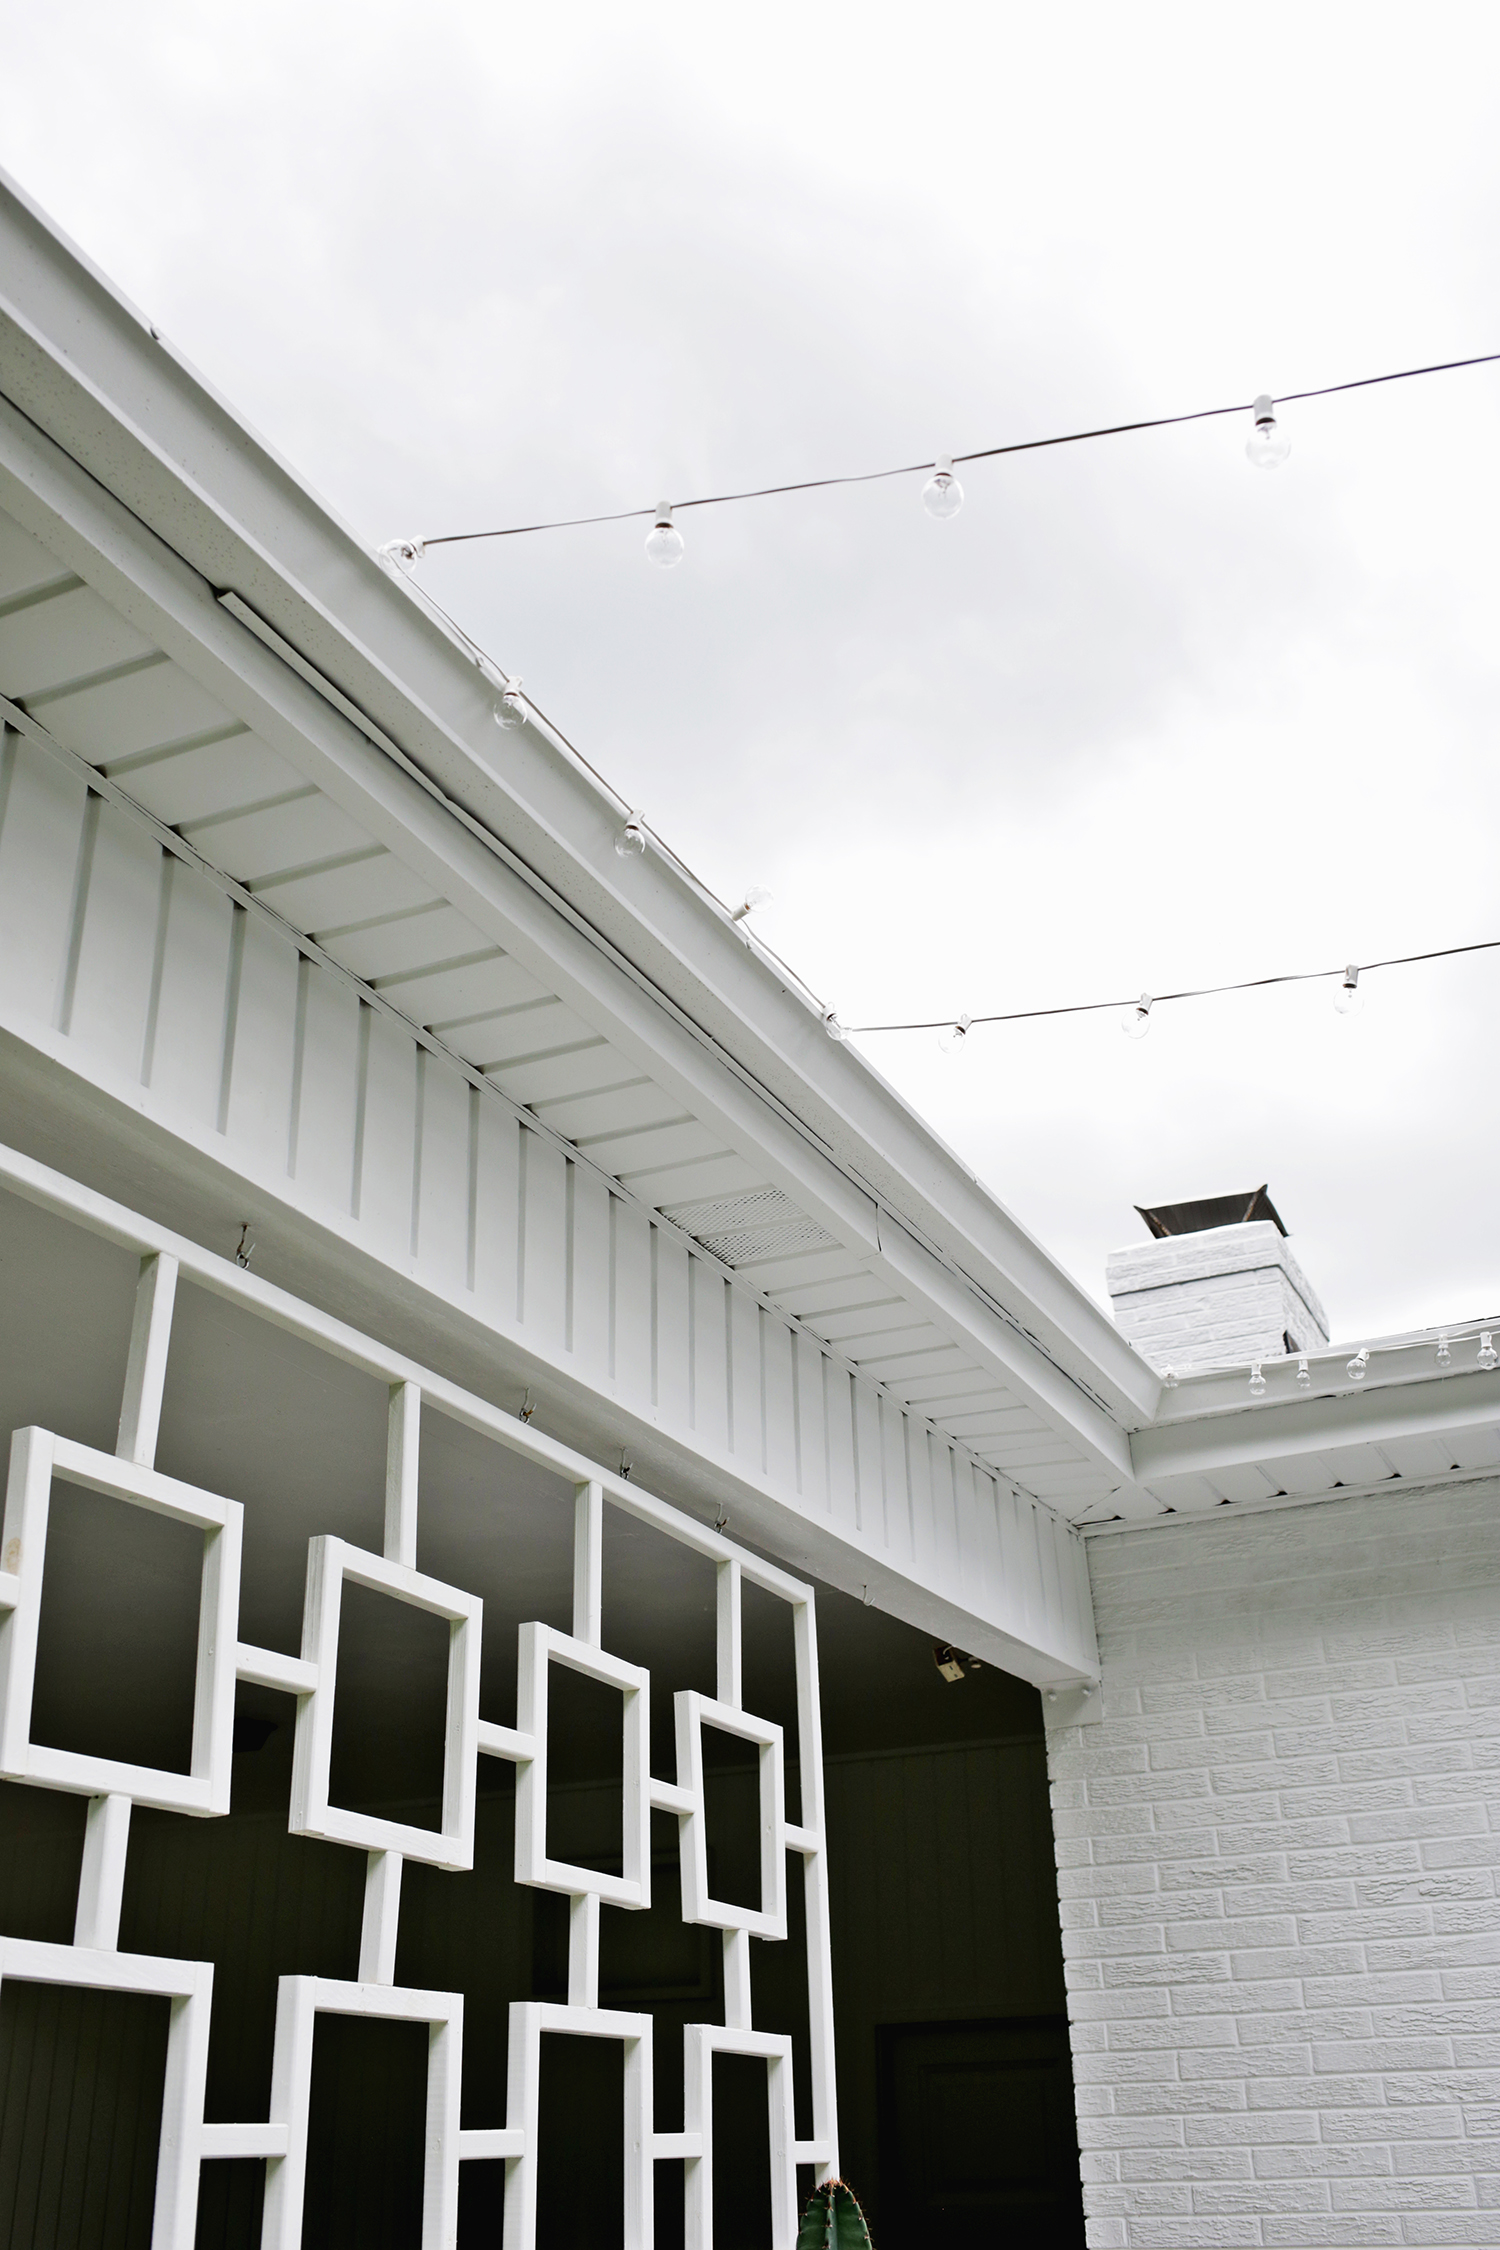 Led Verlichting Pergola Create Outdoor Patio Lighting Without A Pergola Renter Friendly